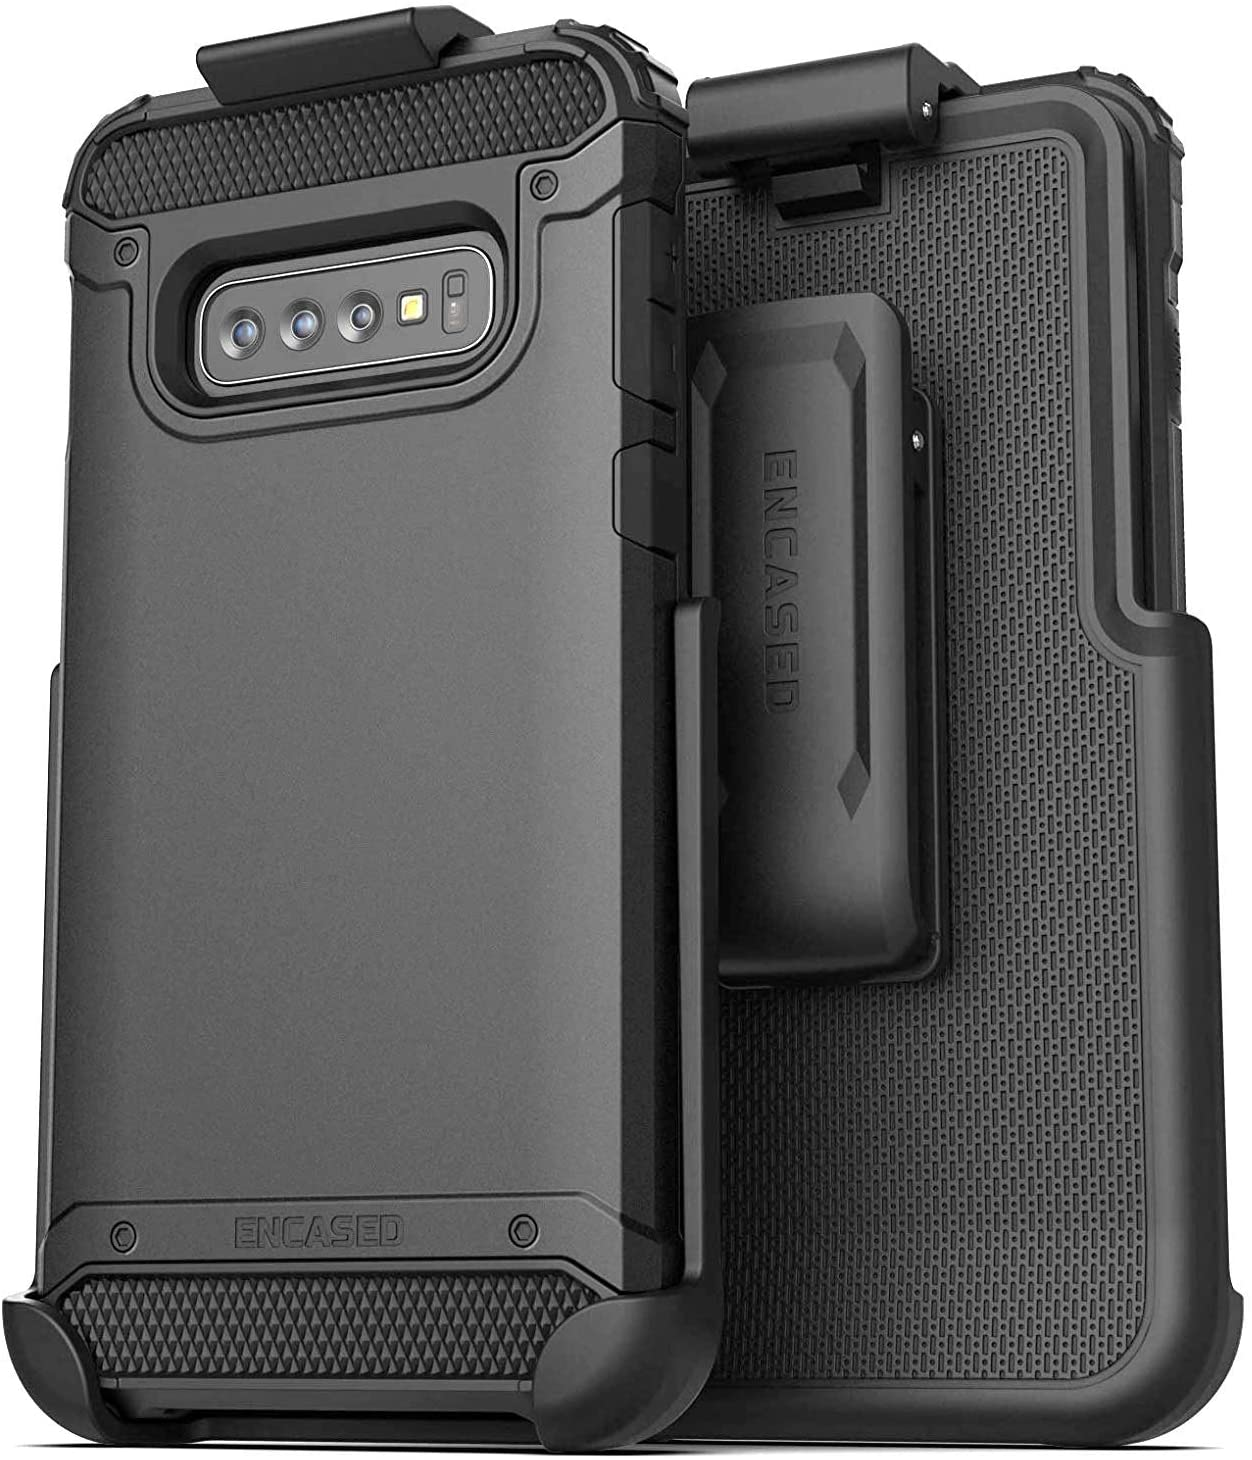 Encased Galaxy S10 Belt Clip Holster Case (2019 Scorpio Armor) Ultra Protective Tough Grip Cover with Holder for Samsung Galaxy S10 - Black